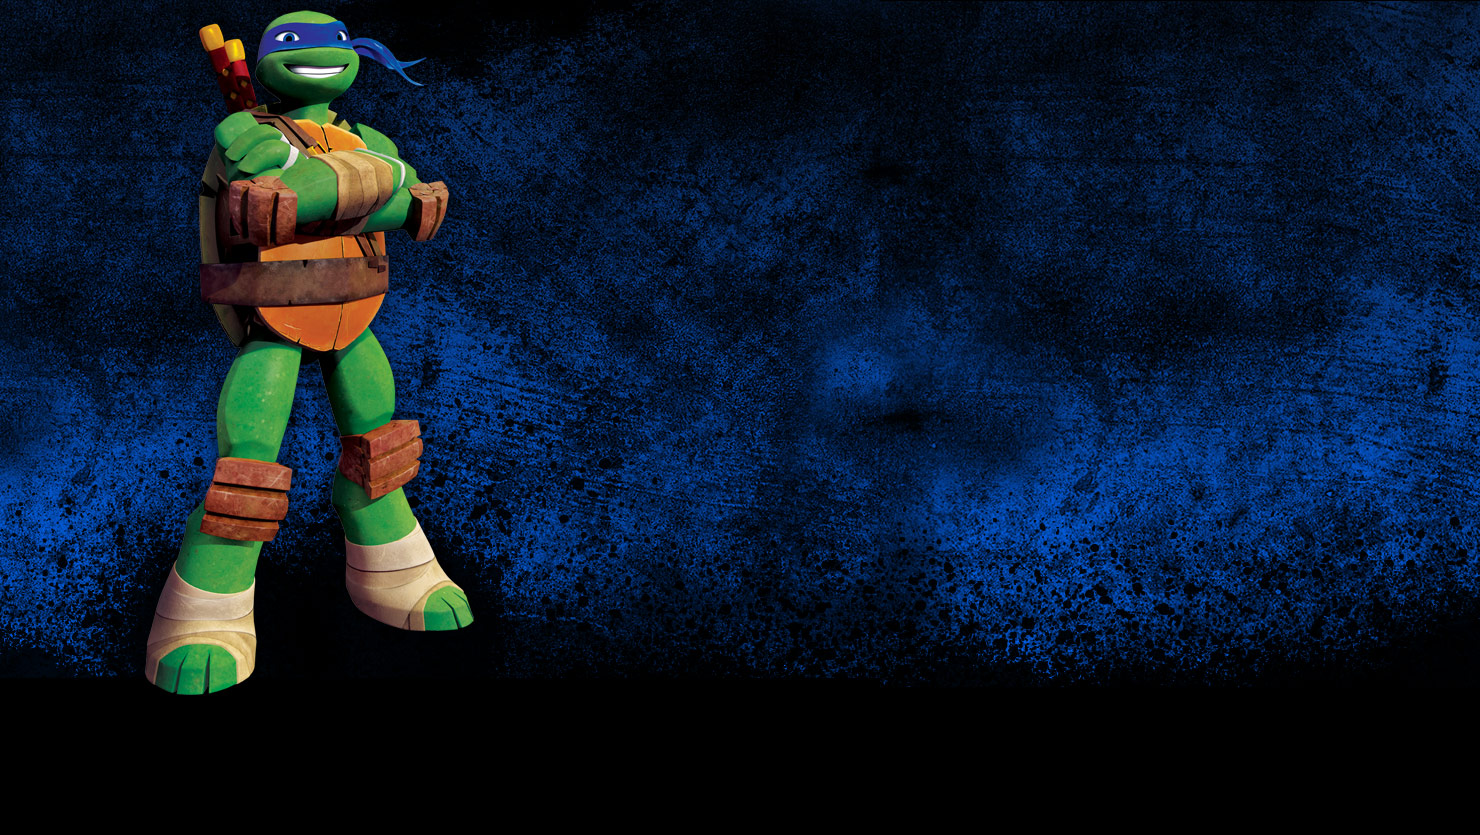 download Teenage Mutant Ninja Turtles Wallpaper Leonardo 1480x835